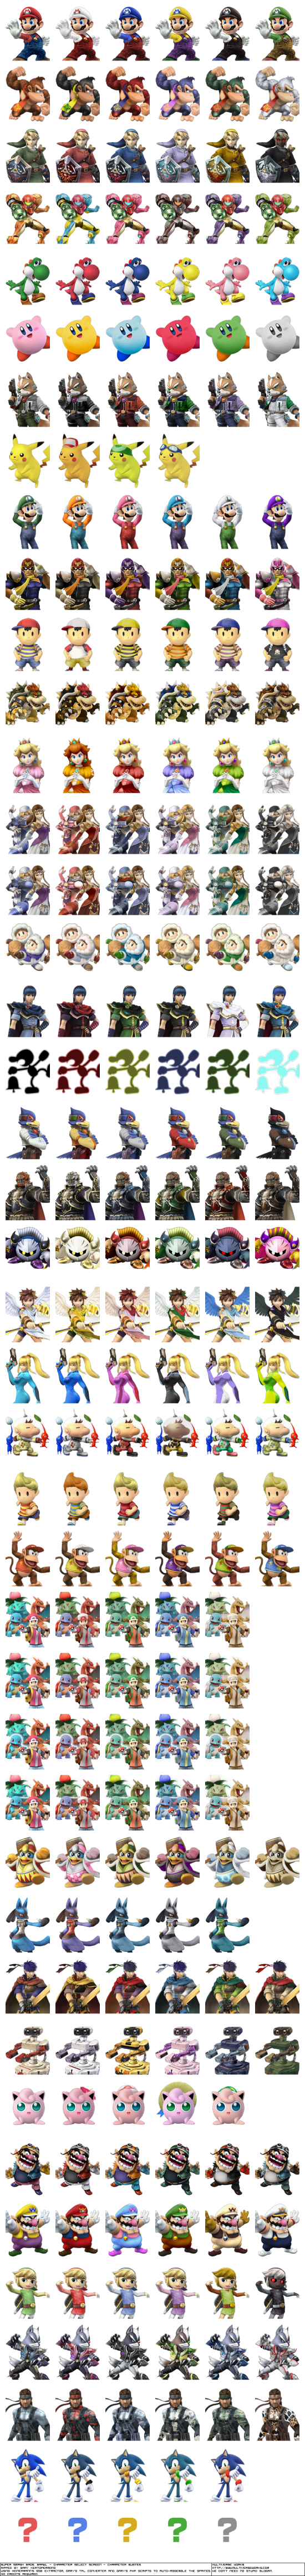 Super Smash Bros Brawl renders character busts